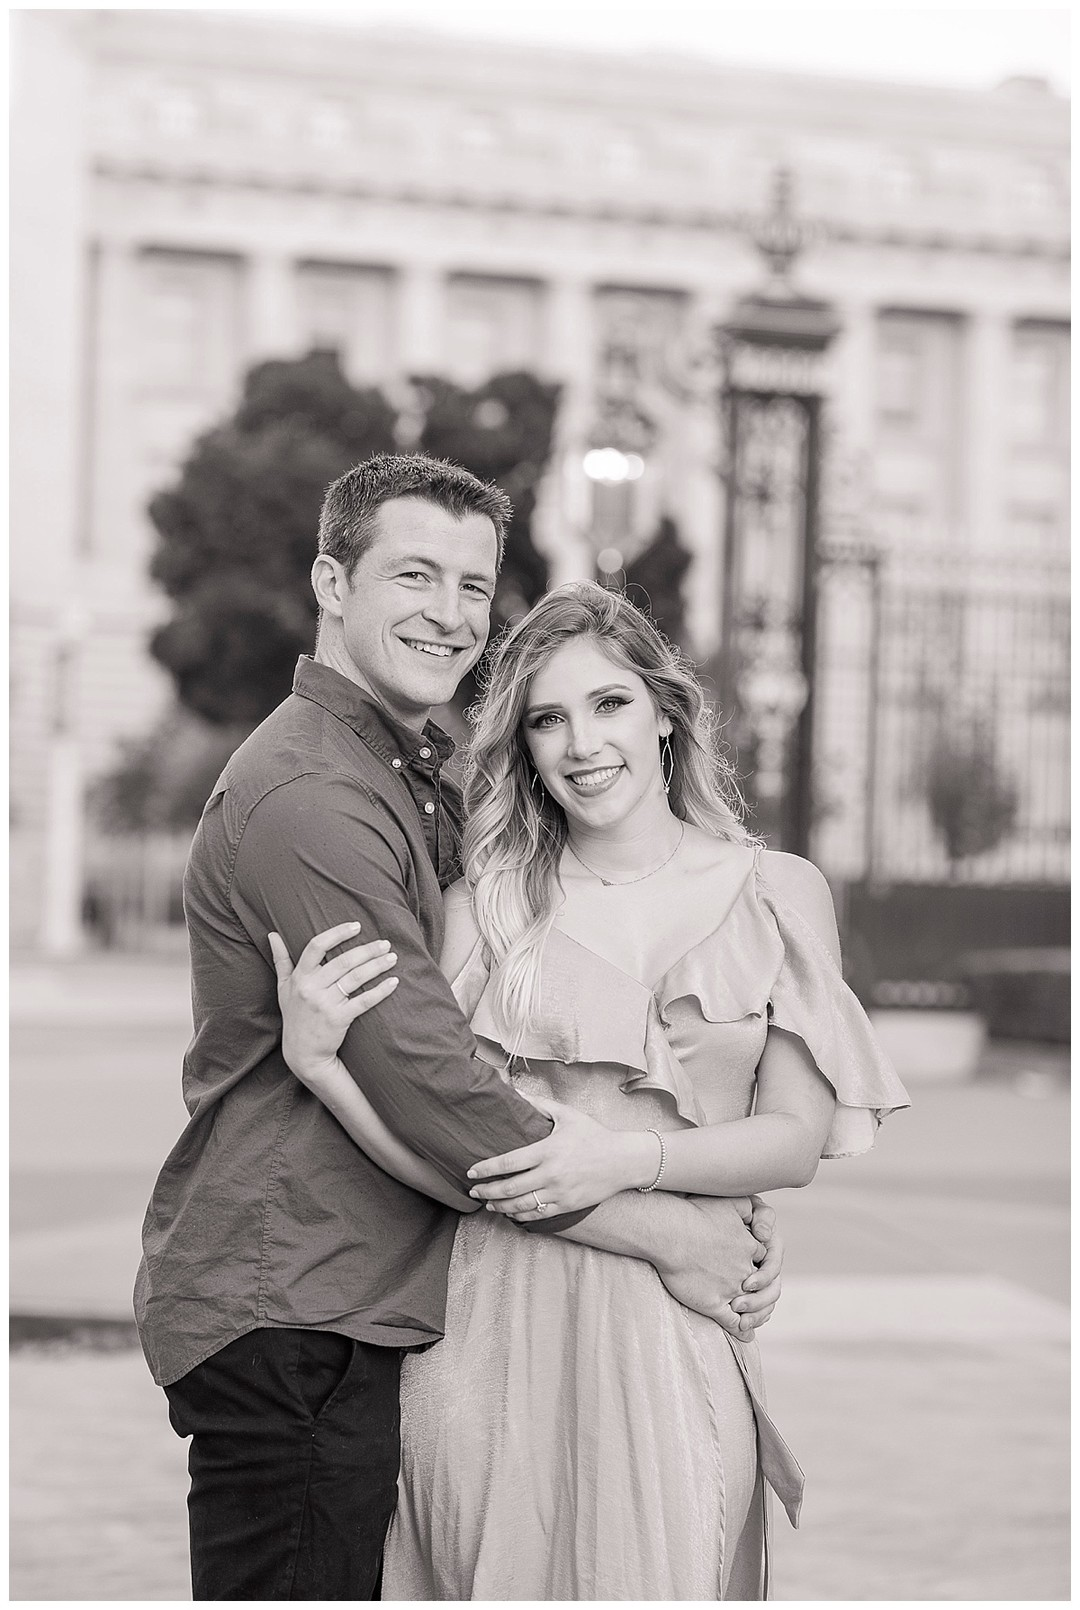 Marriage Proposal Ideas in San Fracisco